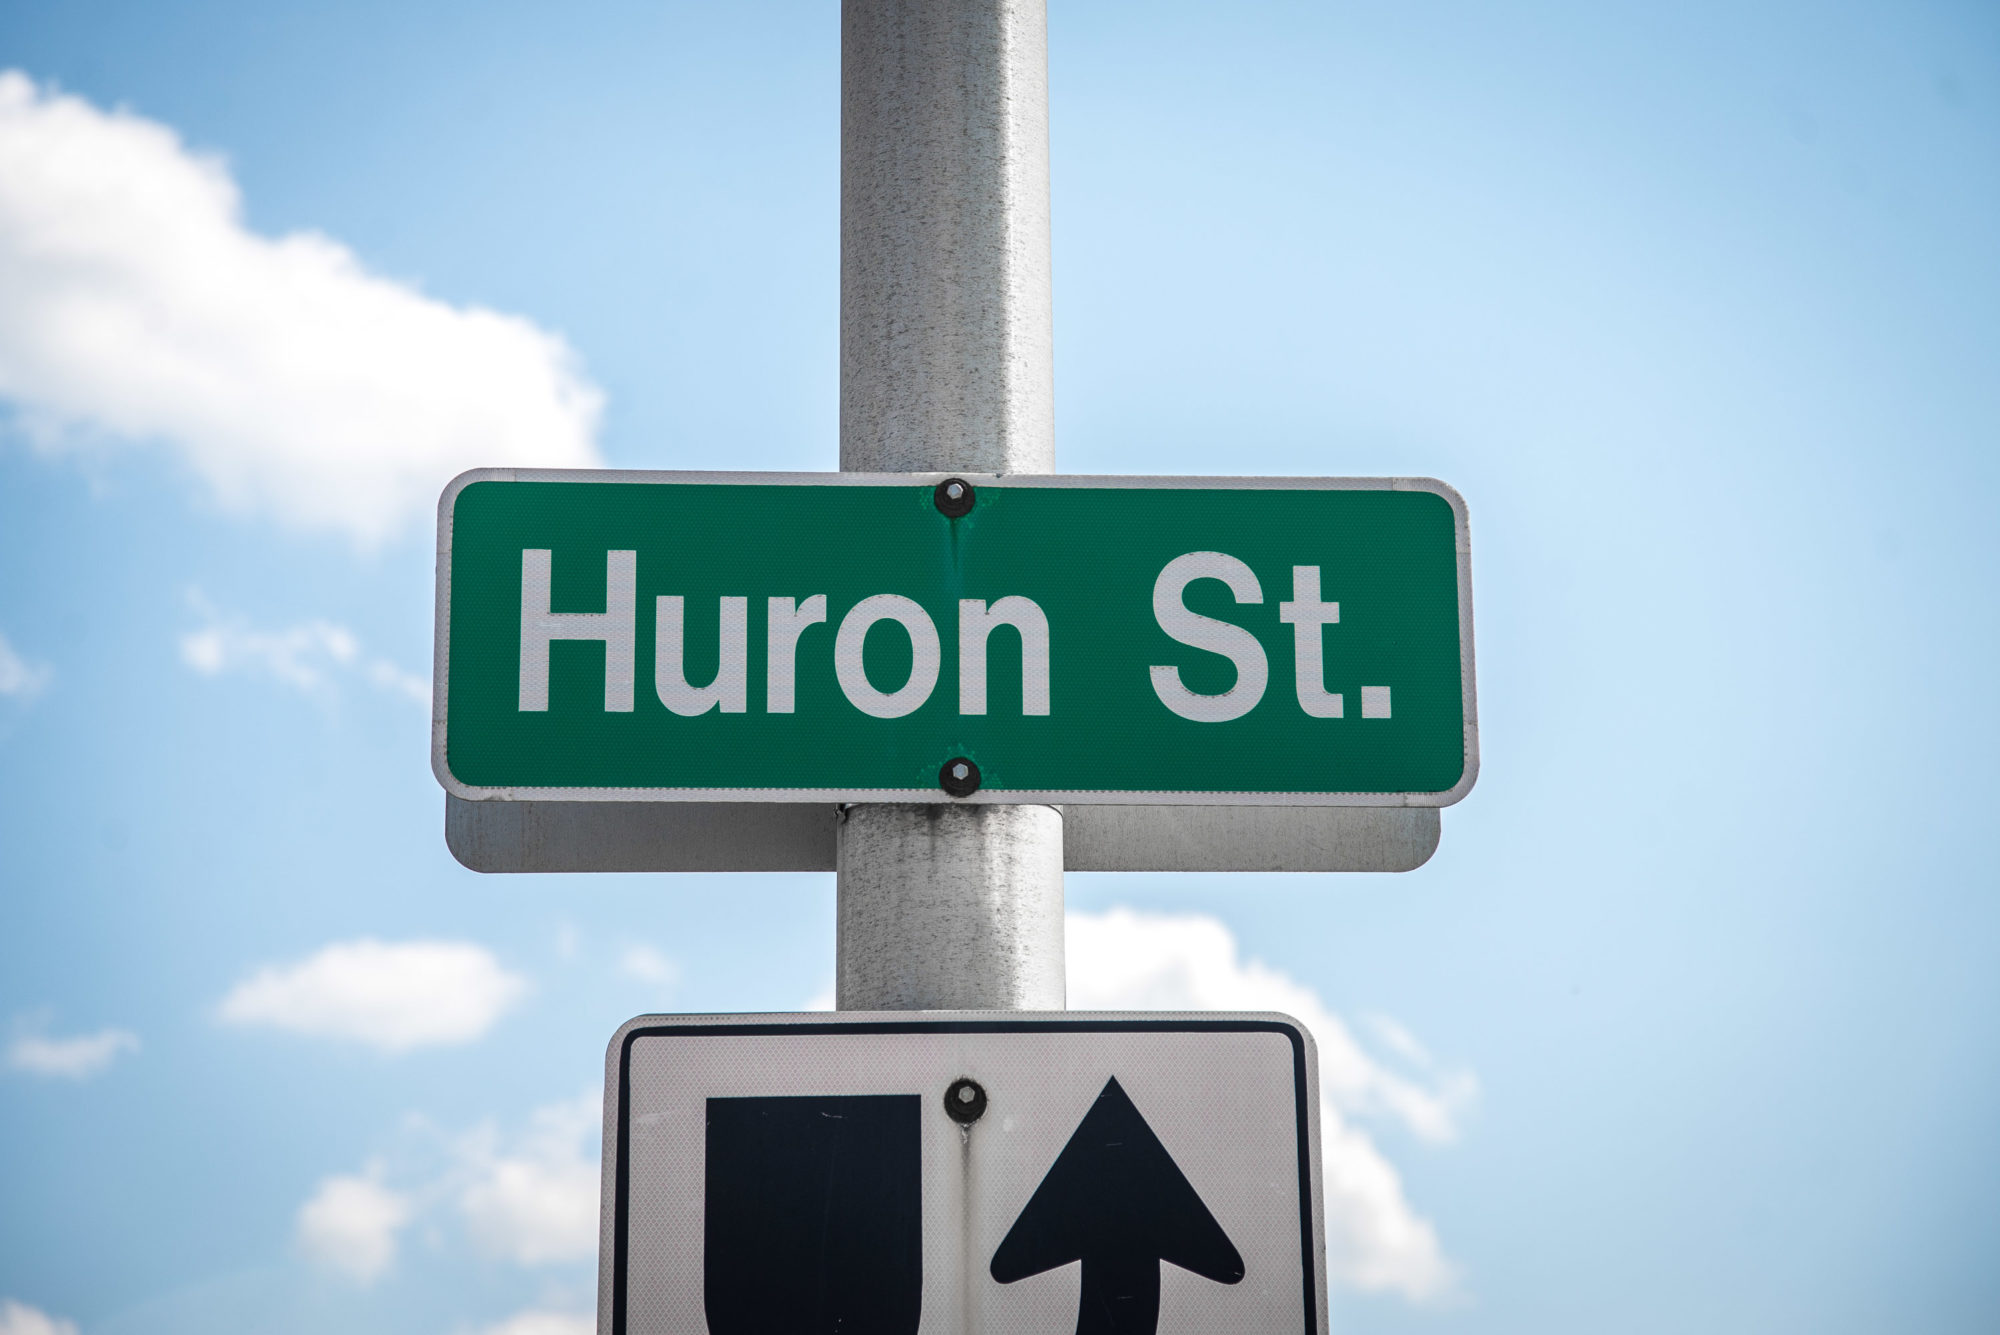 Huron St. London Ontario